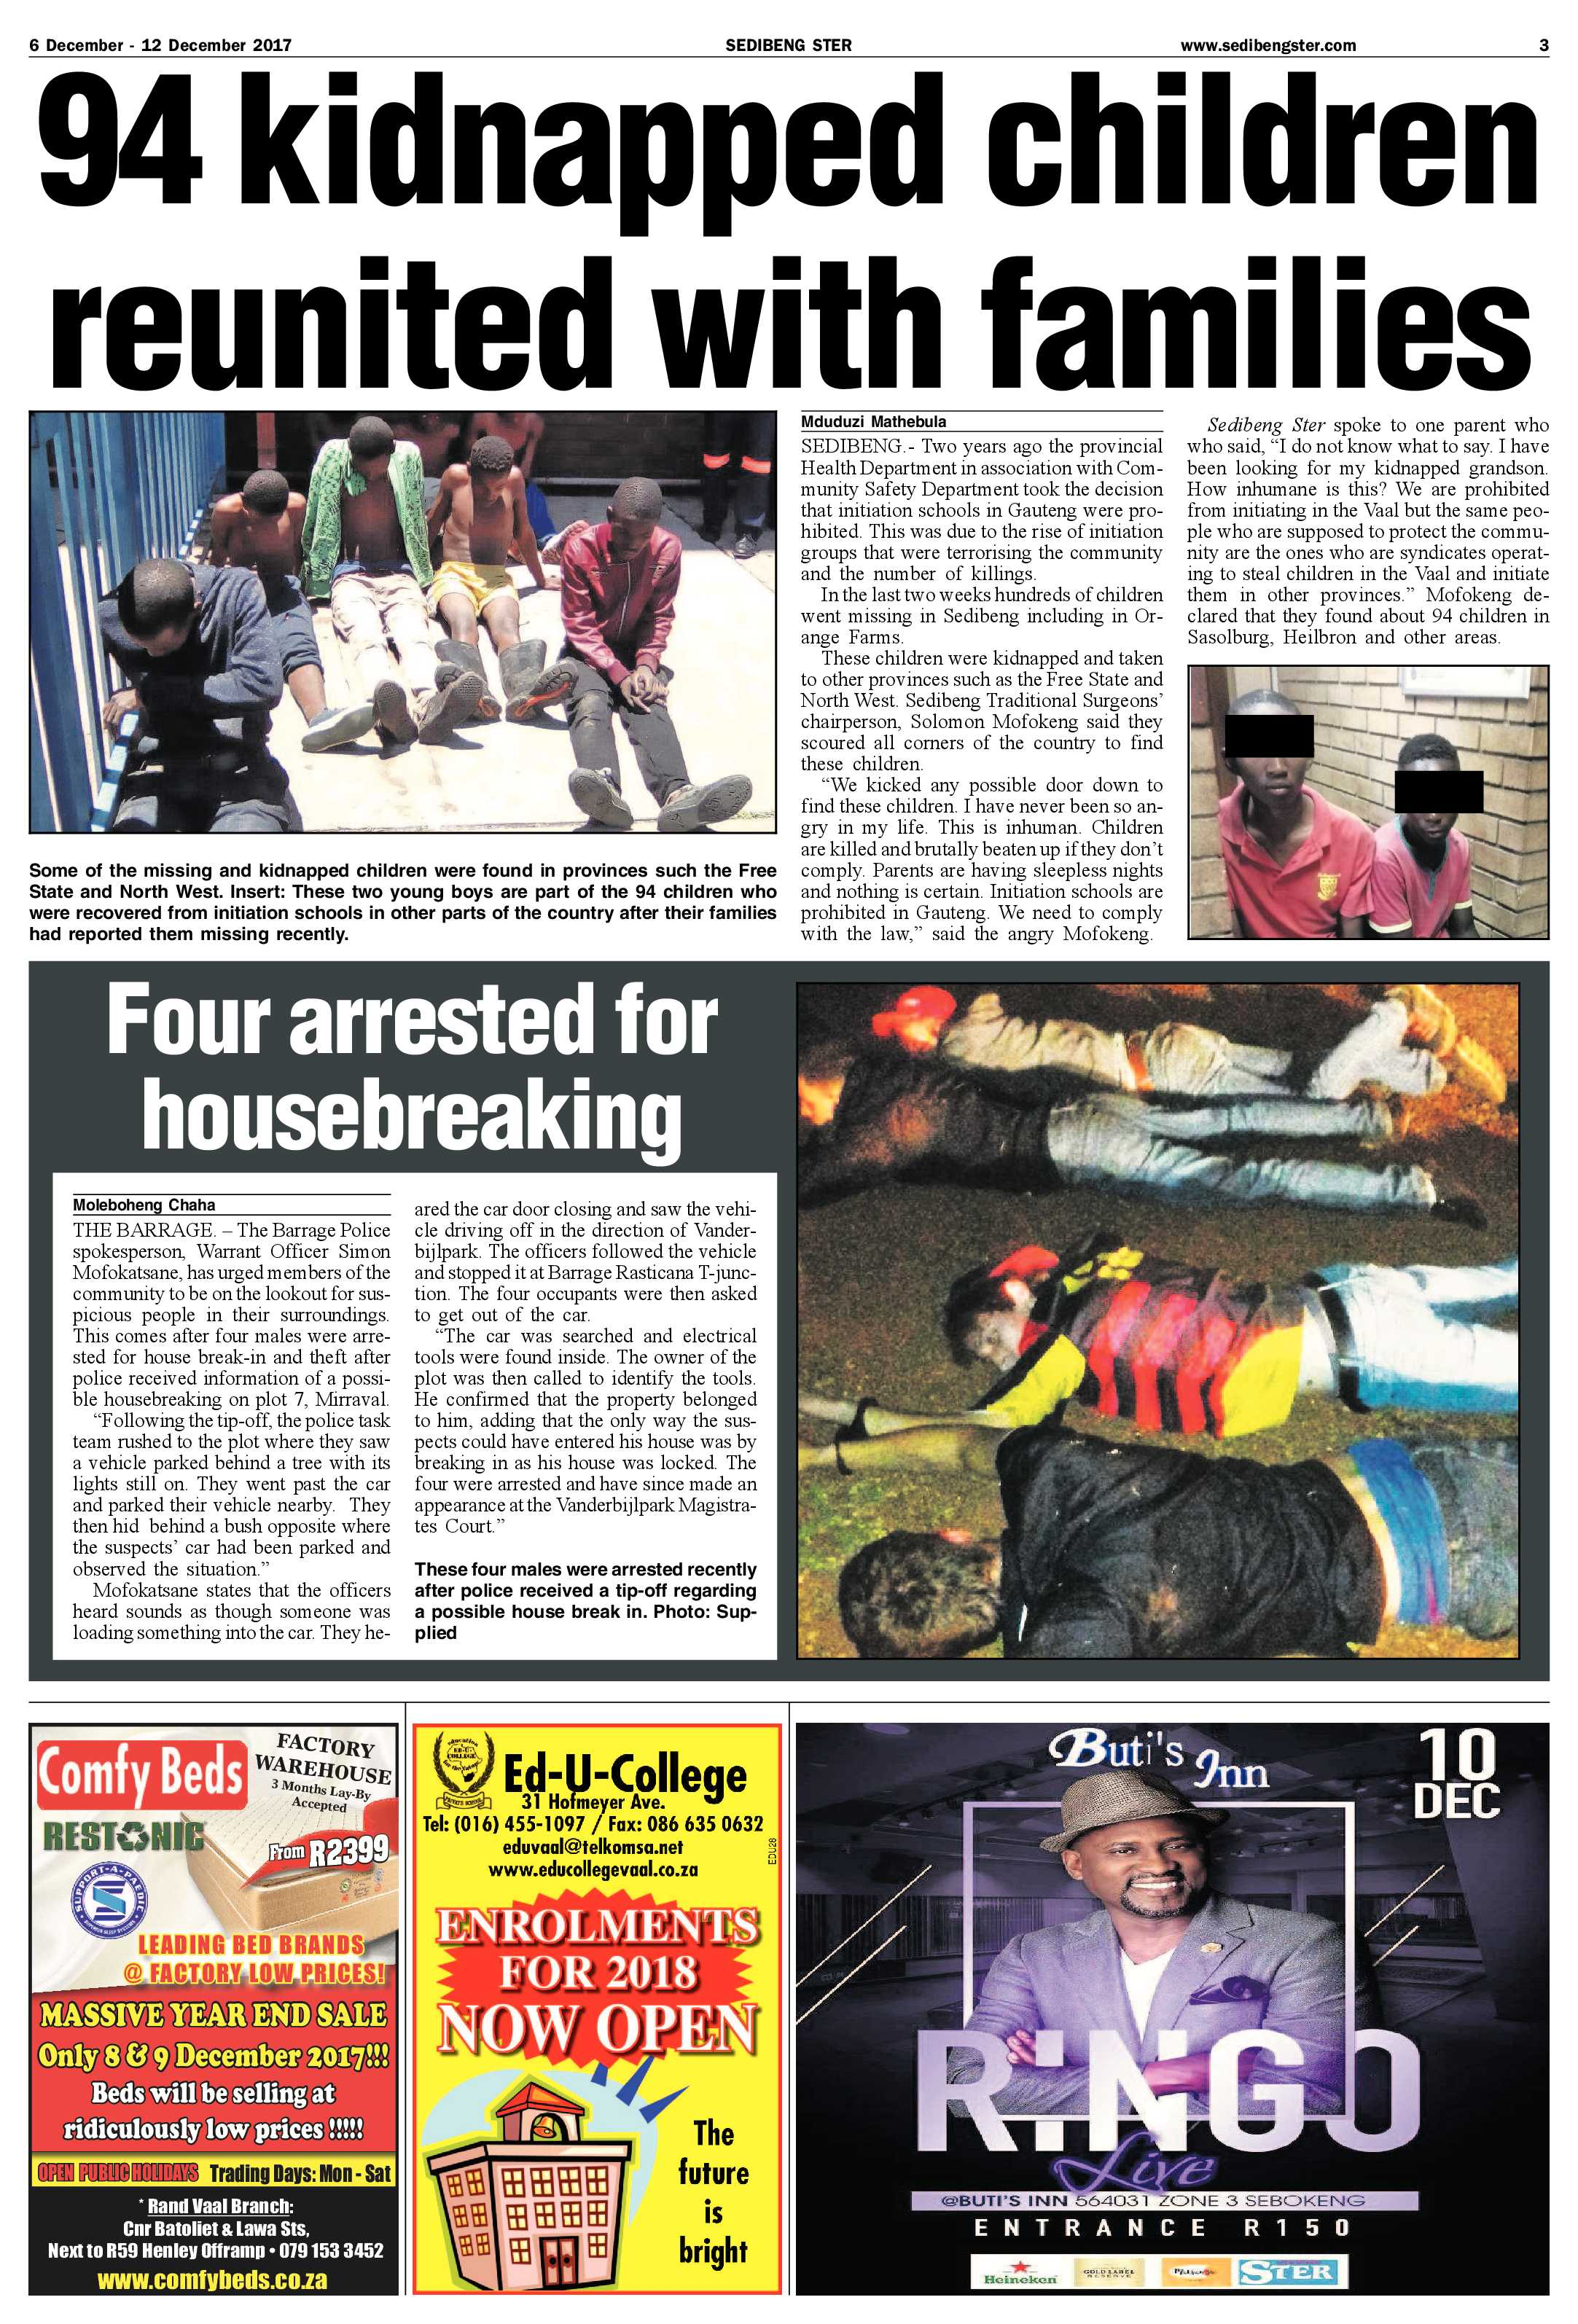 sedibeng-ster-6-12-december-2017-epapers-page-3